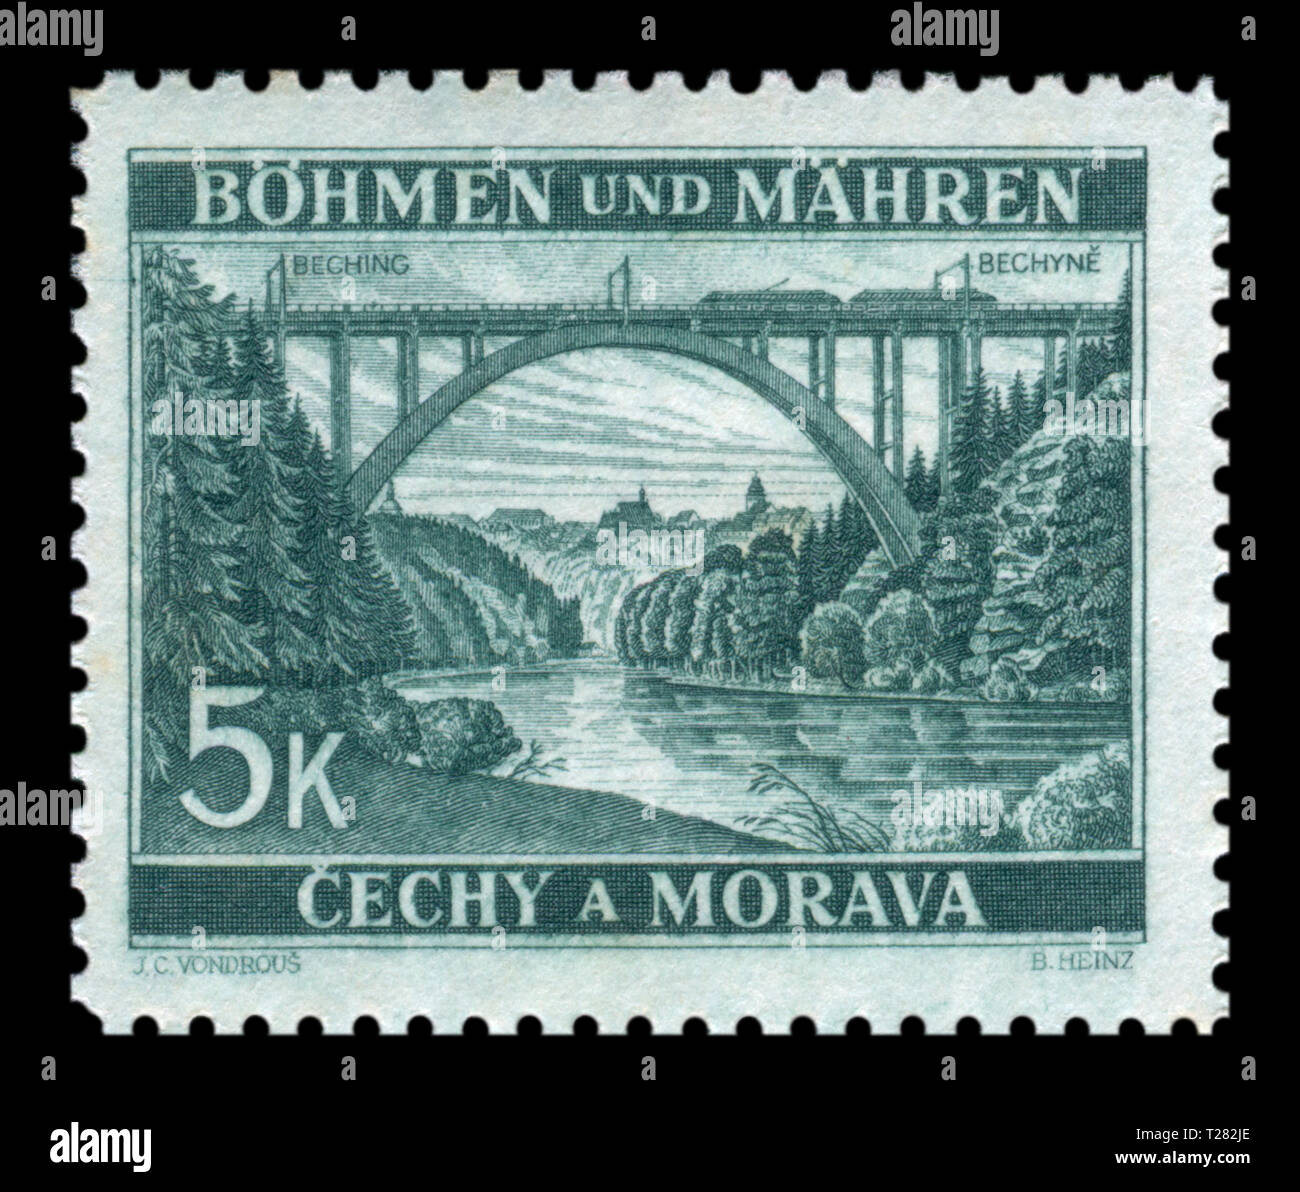 Czechoslovakian historical stamp: Bohemia and Moravia - Local Motifs, high railway arch bridge over the river near the city Bechin, 1940, Germany, DR - Stock Image